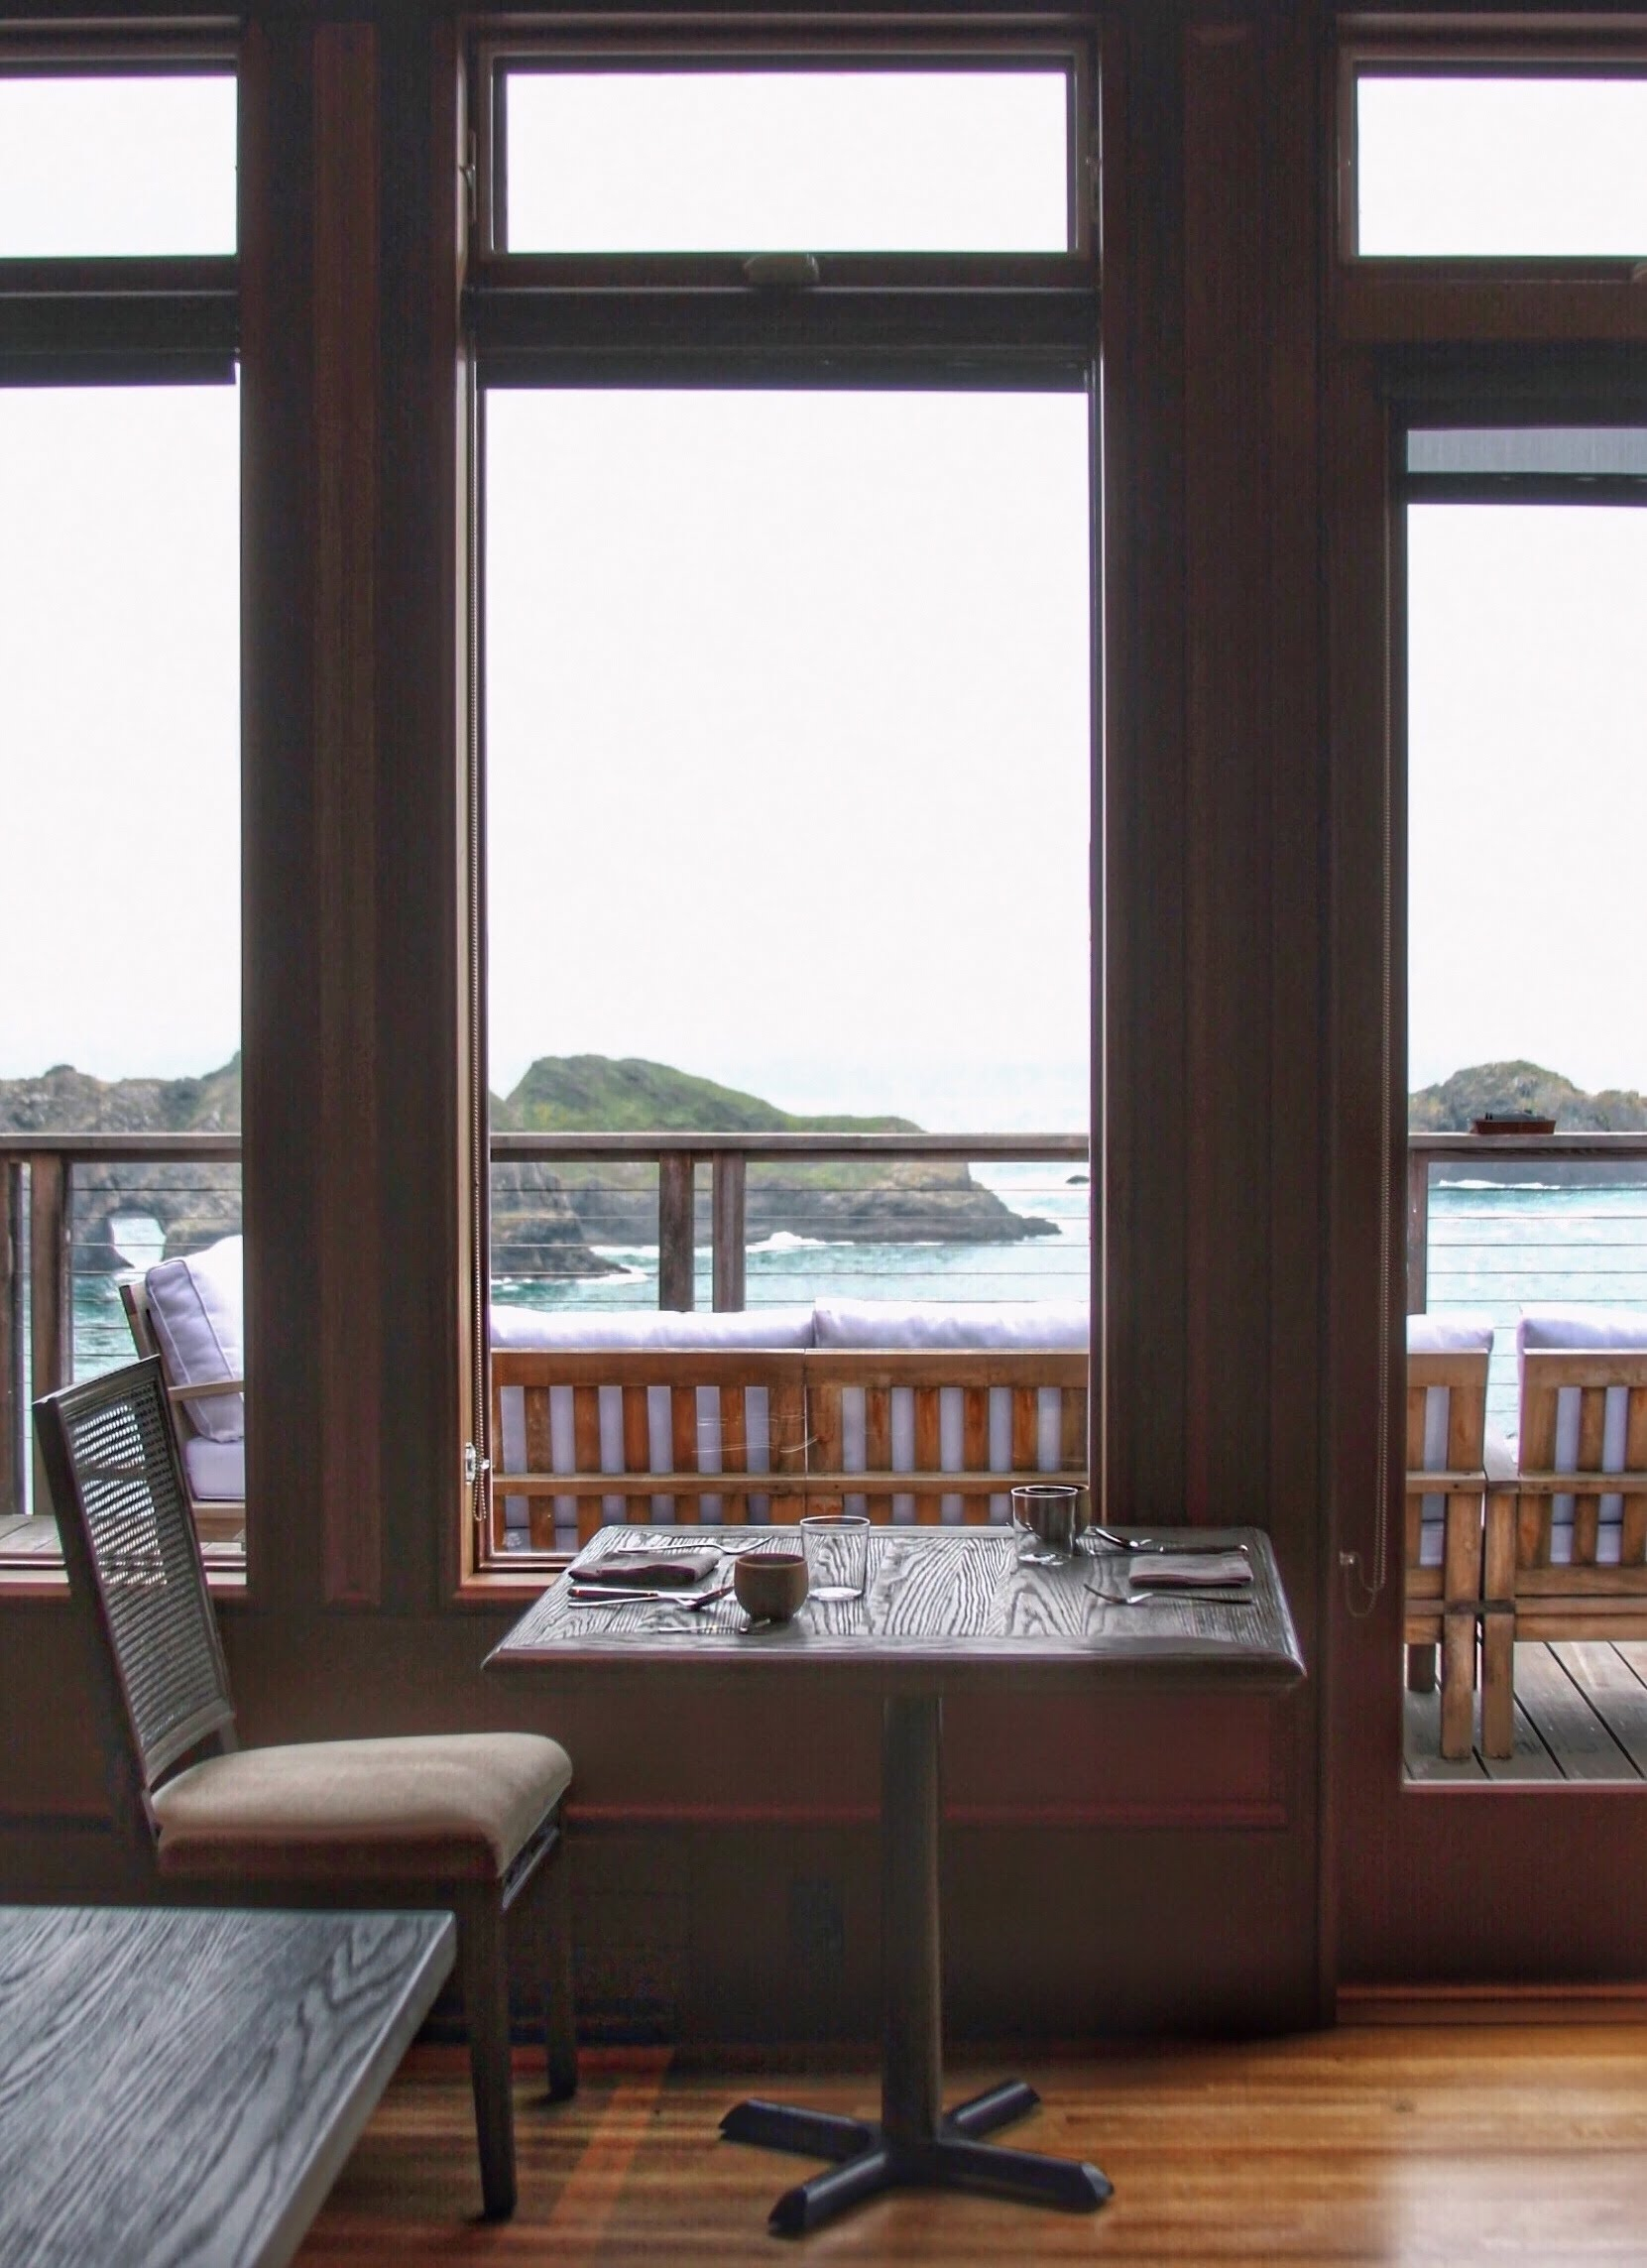 The ridiculous vantage point from the dining room at The Harbor House Inn.